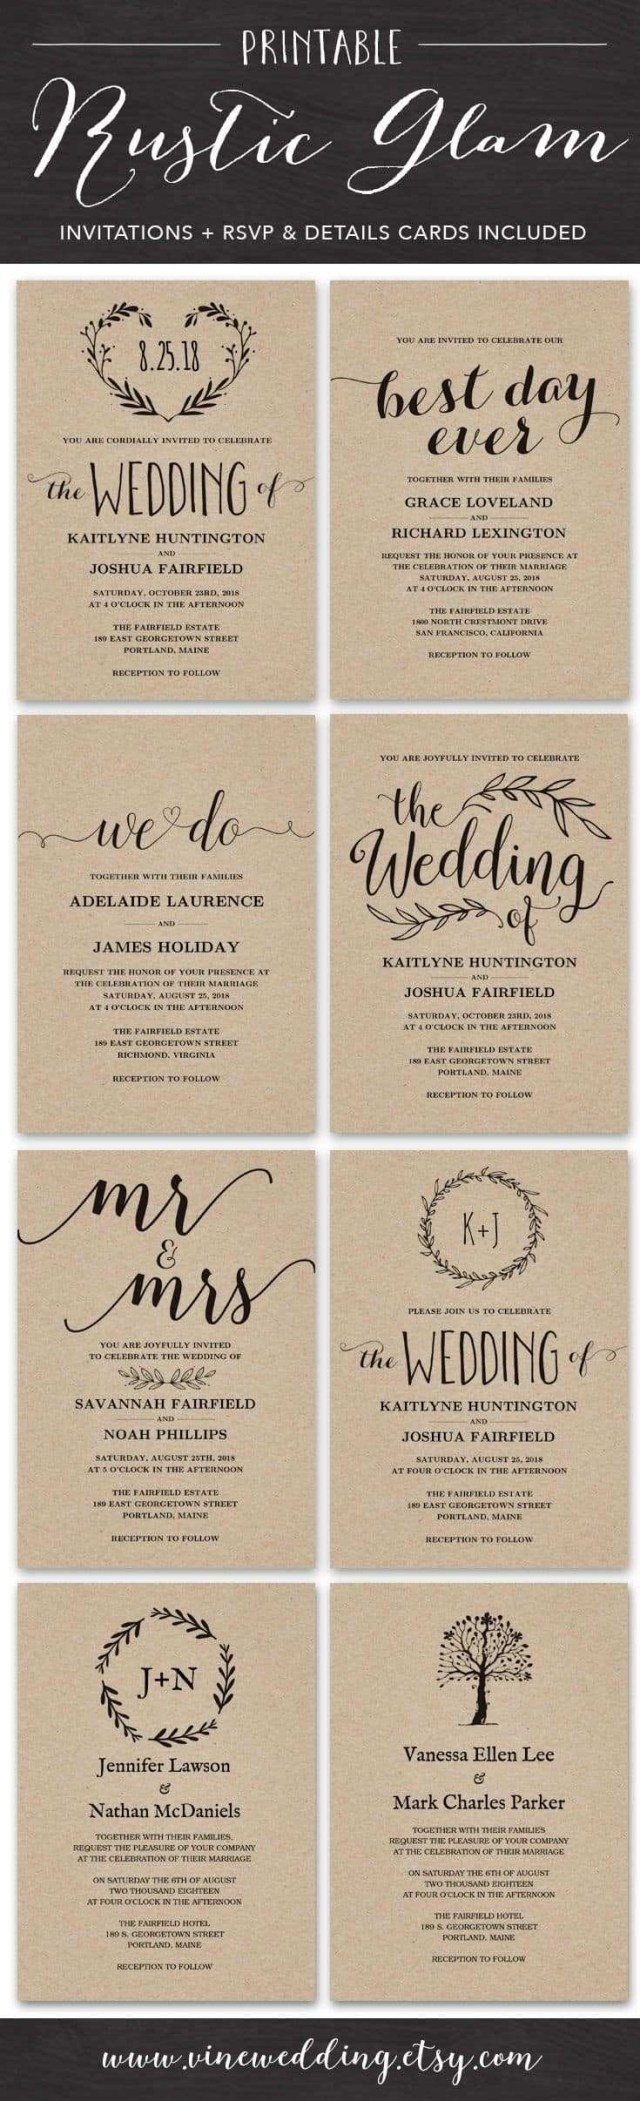 Rustic Chic Wedding Invitations Diy Rustic Chic Wedding Invitations Best Of Maroon Wedding Invitations